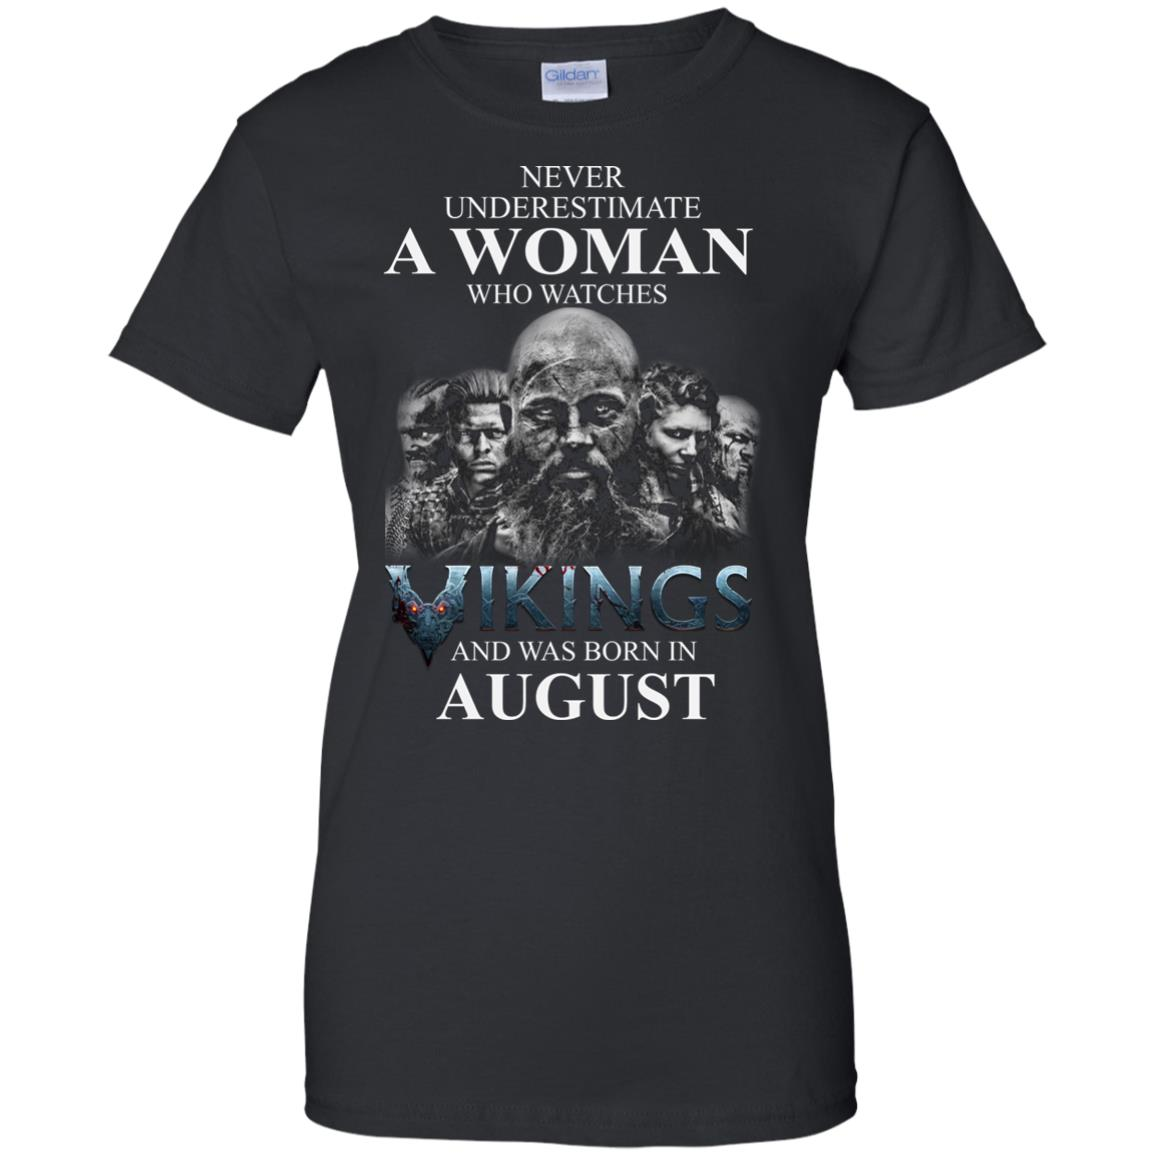 image 1277 - Never Underestimate A woman who watches Vikings and was born in August shirt